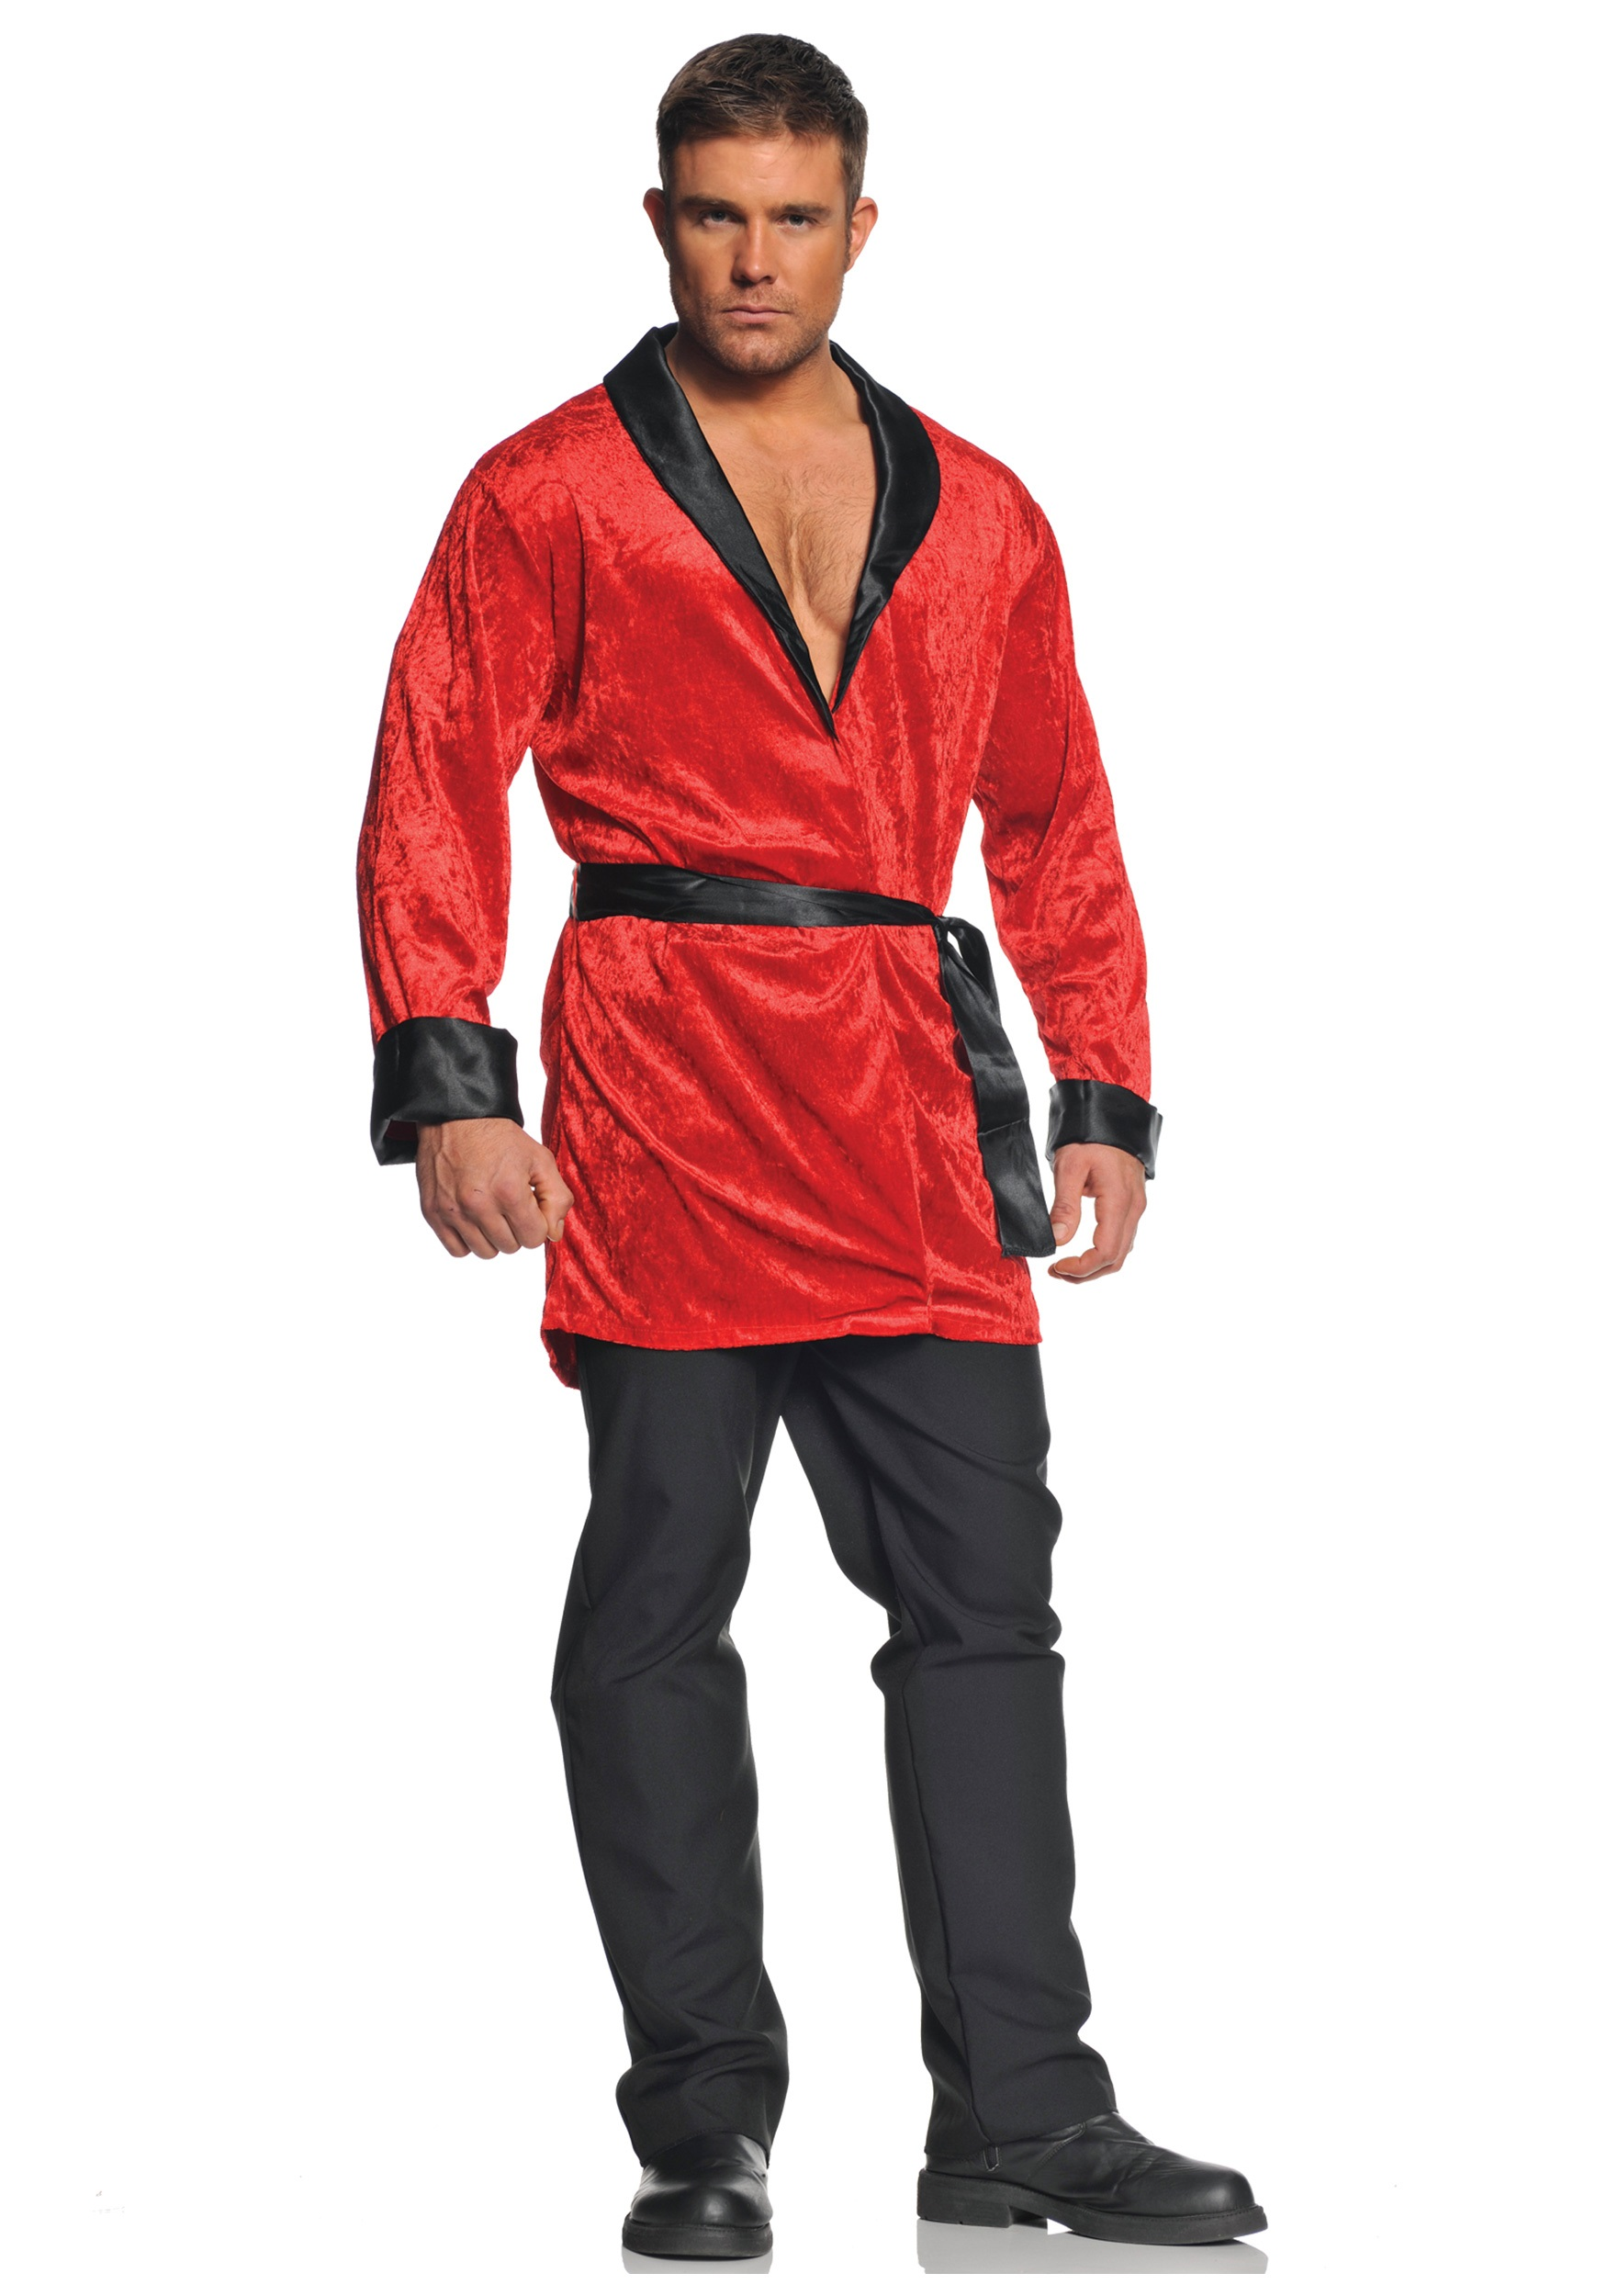 Plus Size Smoking Jacket